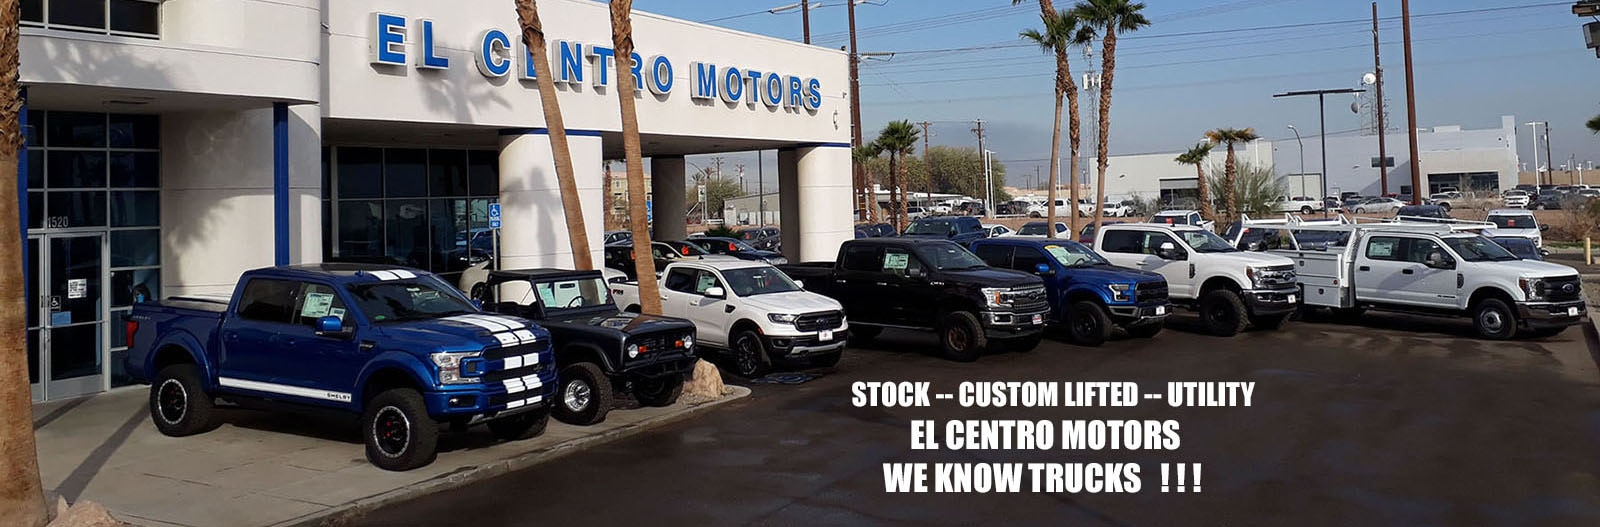 Build Price And Configure Your New Ford Valley Ford Truck >> El Centro Motors New Lincoln Ford Dealership In El Centro Ca